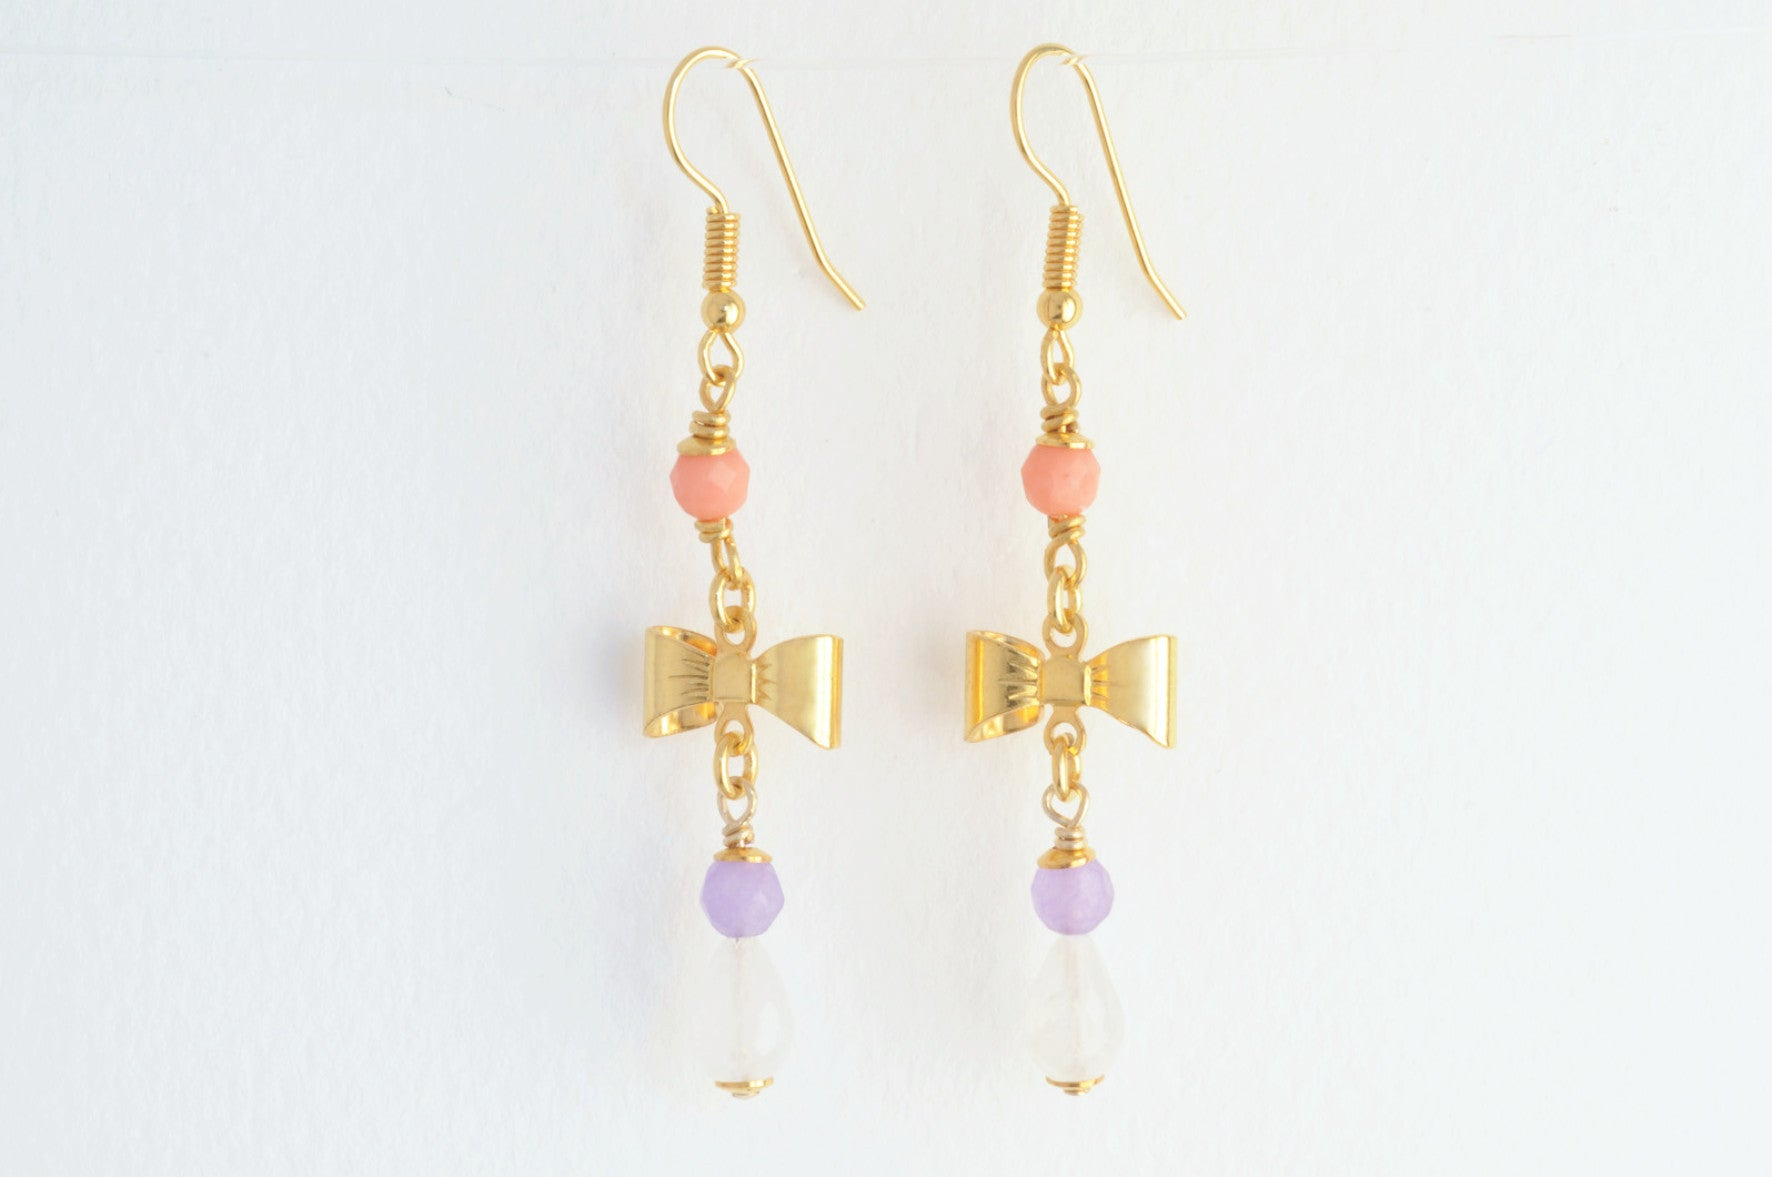 ....Ohrringe BOW large vergoldet..Earrings BOW large gold plated....